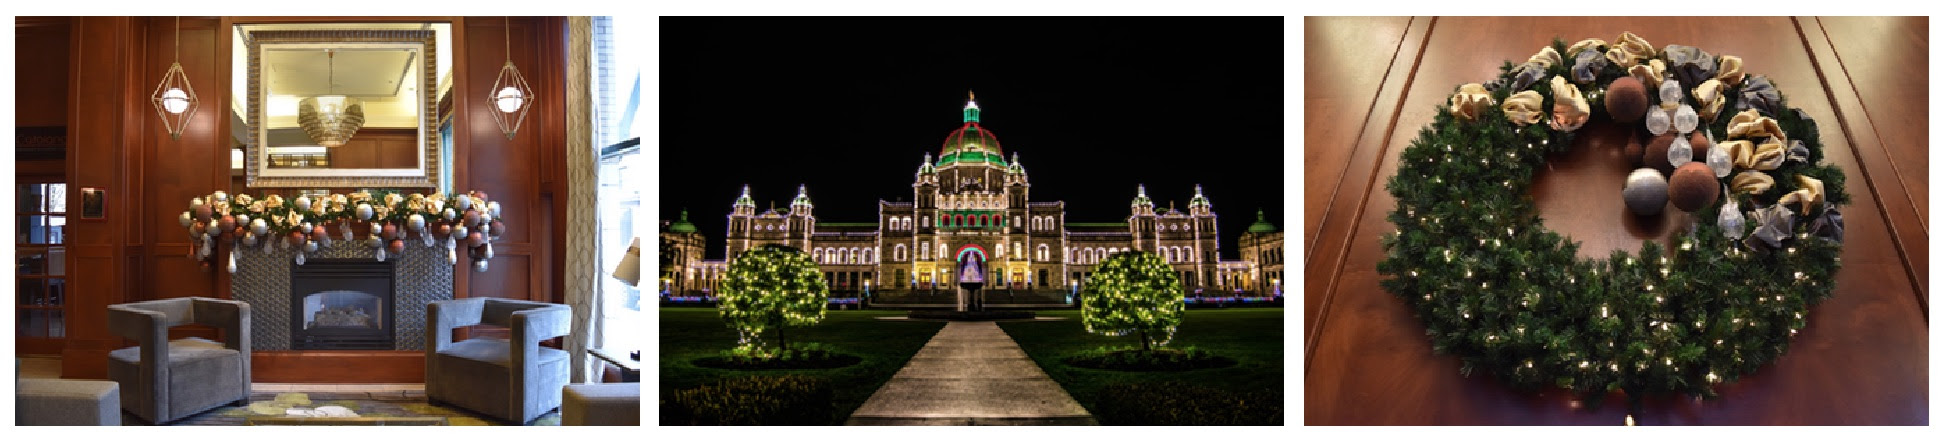 Enjoy the Ultimate Victorian Christmas at Magnolia Hotel & Spa